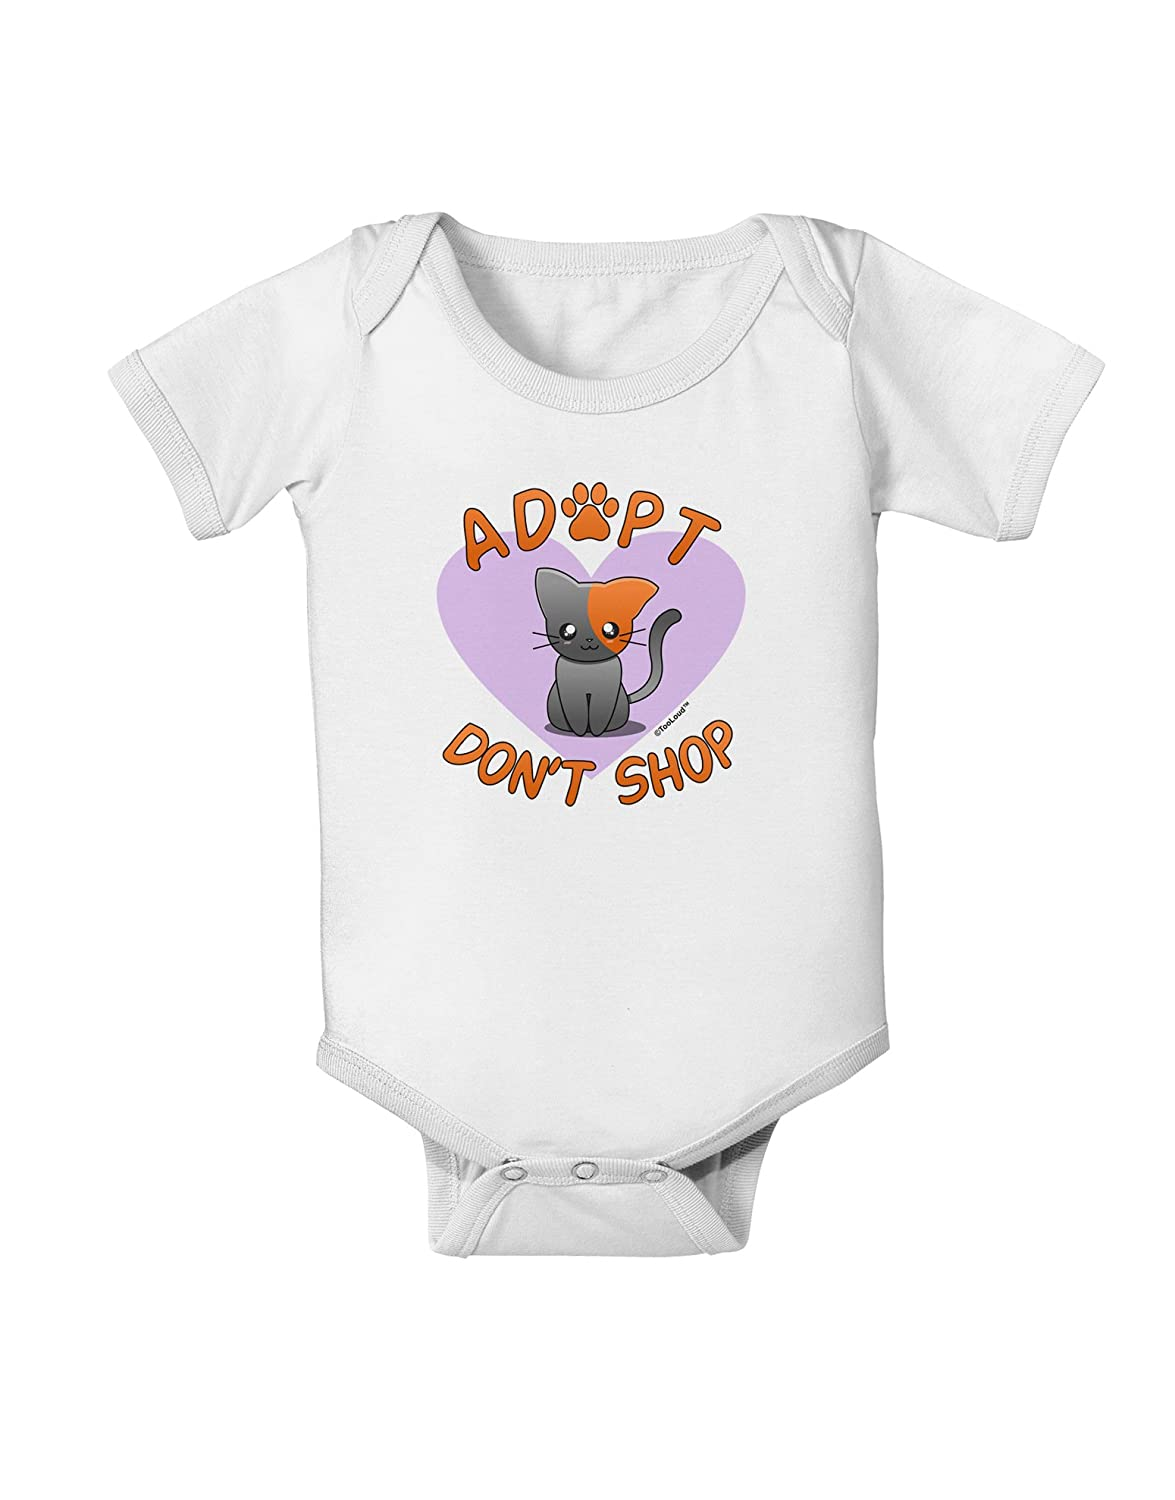 TooLoud Adopt Dont Shop Cute Kitty Baby Romper Bodysuit